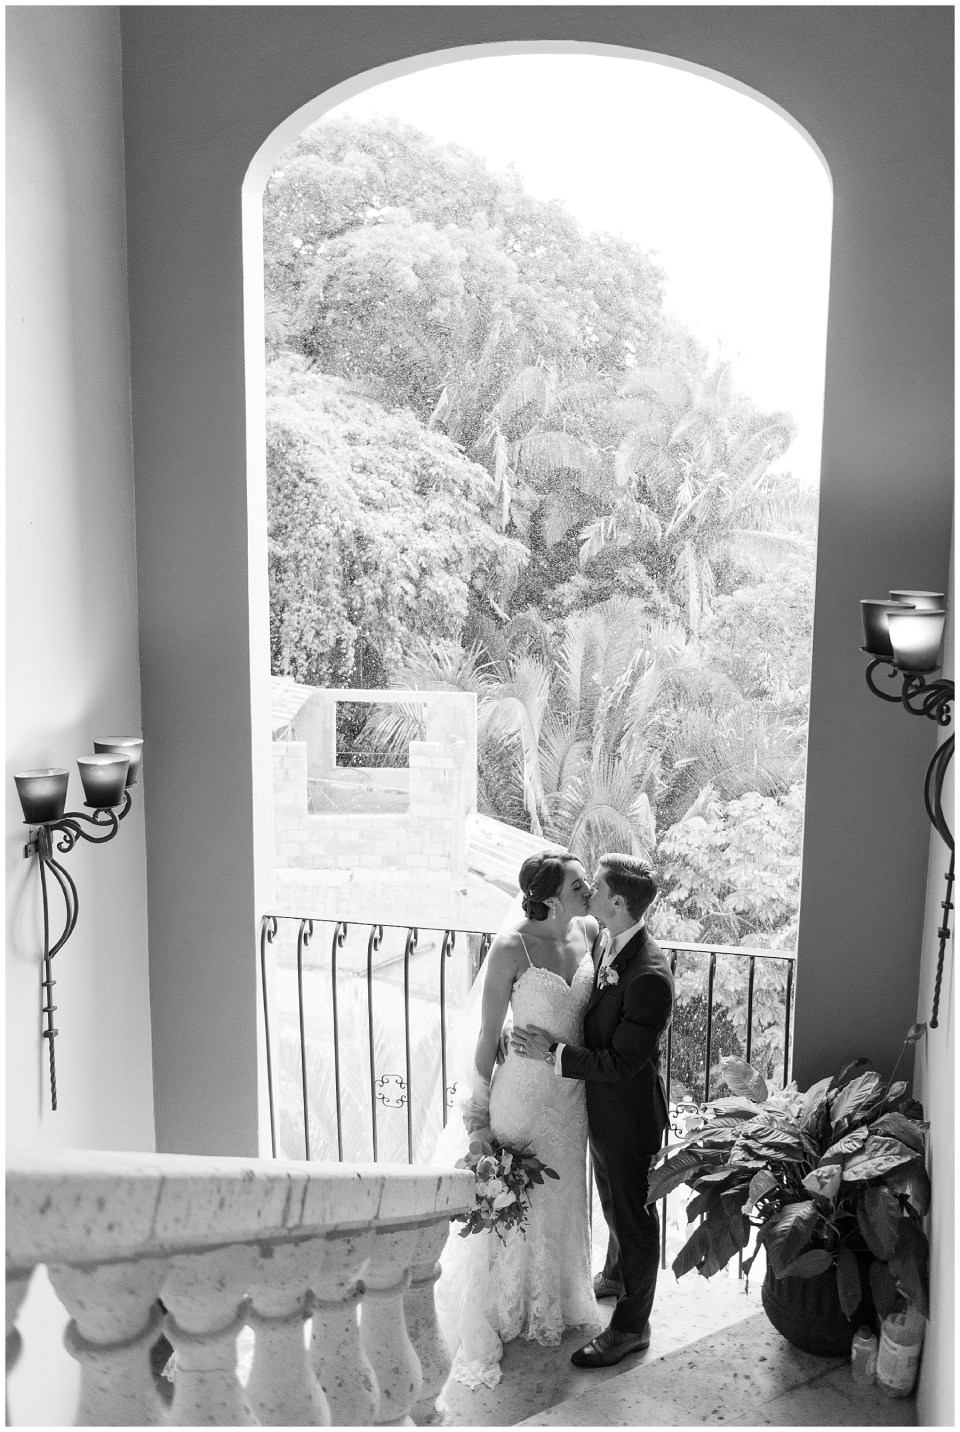 dc-destination-wedding-photographer-puerto-vallarta-mexico-wedding-photo-90_photos.jpg